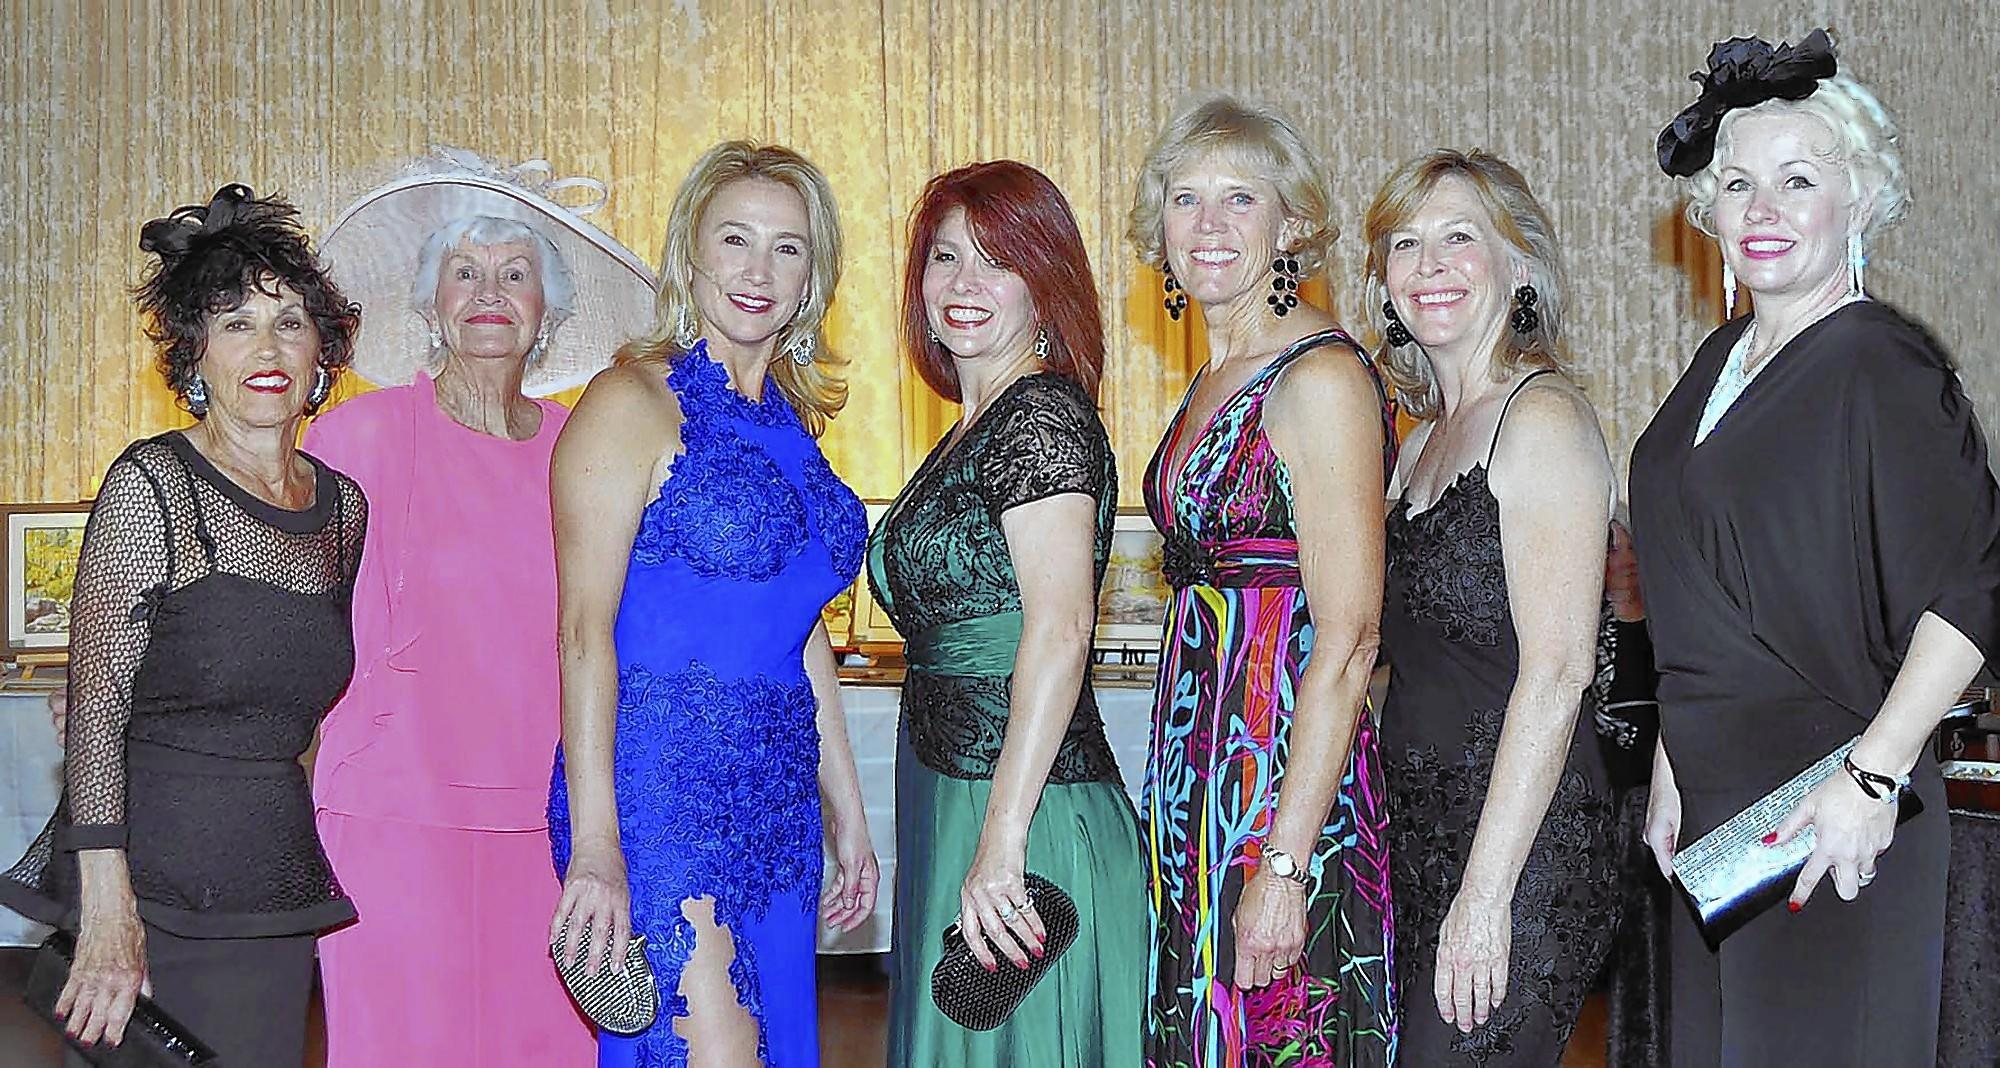 Some of the models at the Thursday Club fashion show were, from left, Anne Wacker, Pat Huber, Suzy Lawrence, Aida Avanessian, Marian Christensen, Jane Owen and Cindi McIntosh-Behr.